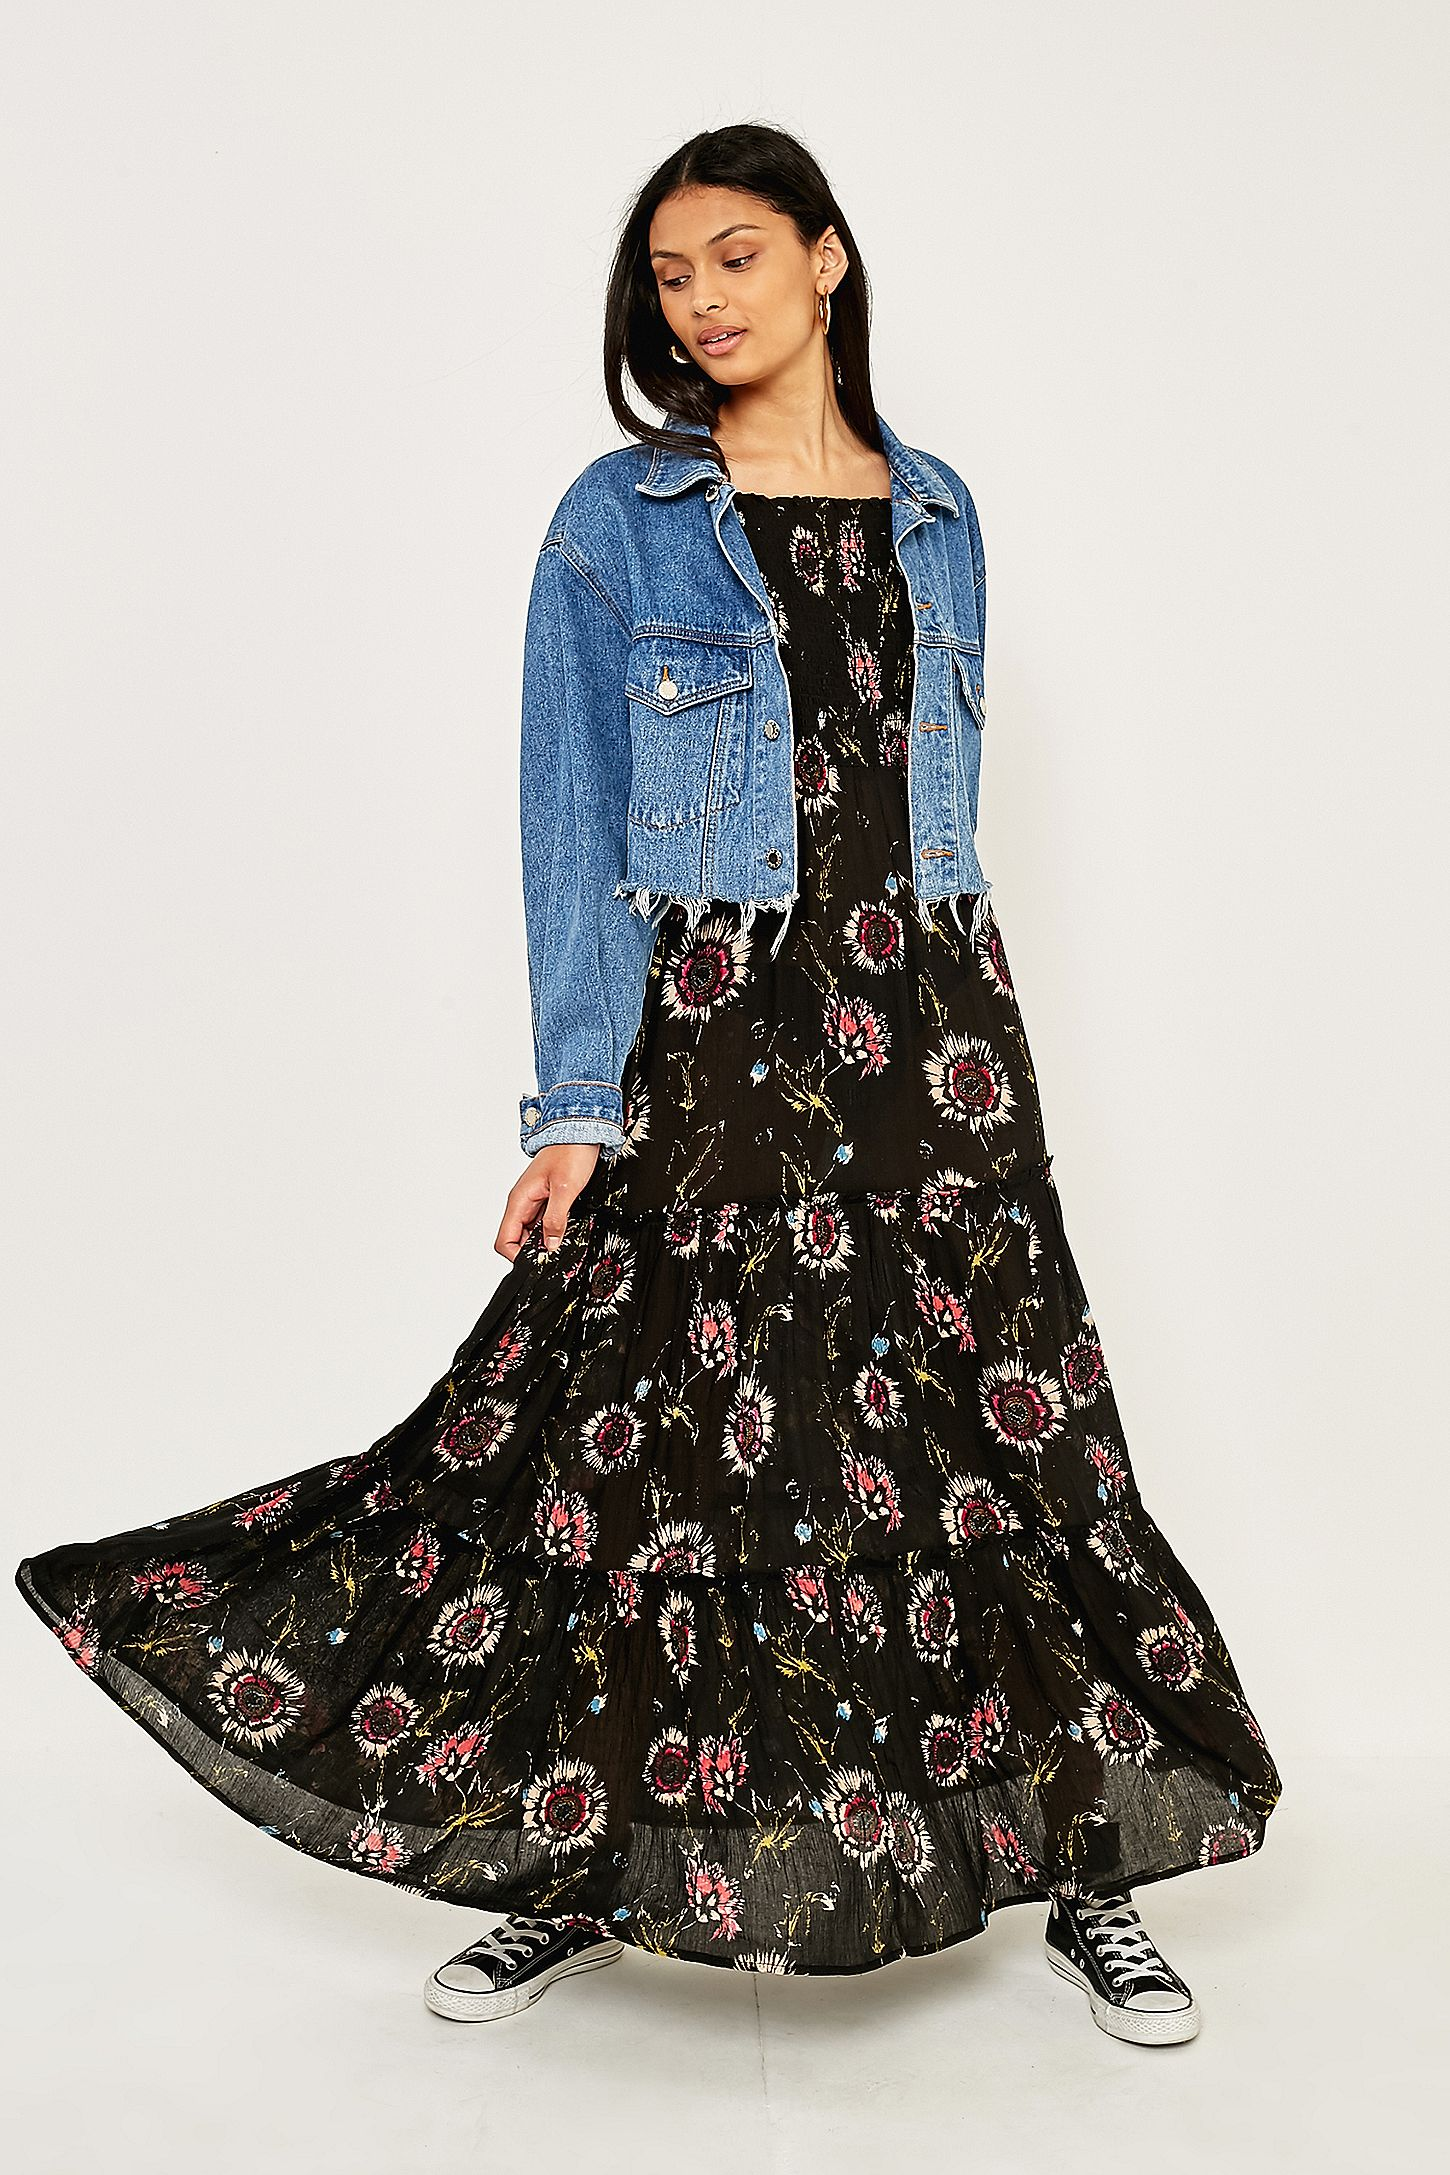 edebaf050e1 Free People Garden Party Floral Maxi Dress. Click on image to zoom. Hover  to zoom. Double Tap to Zoom